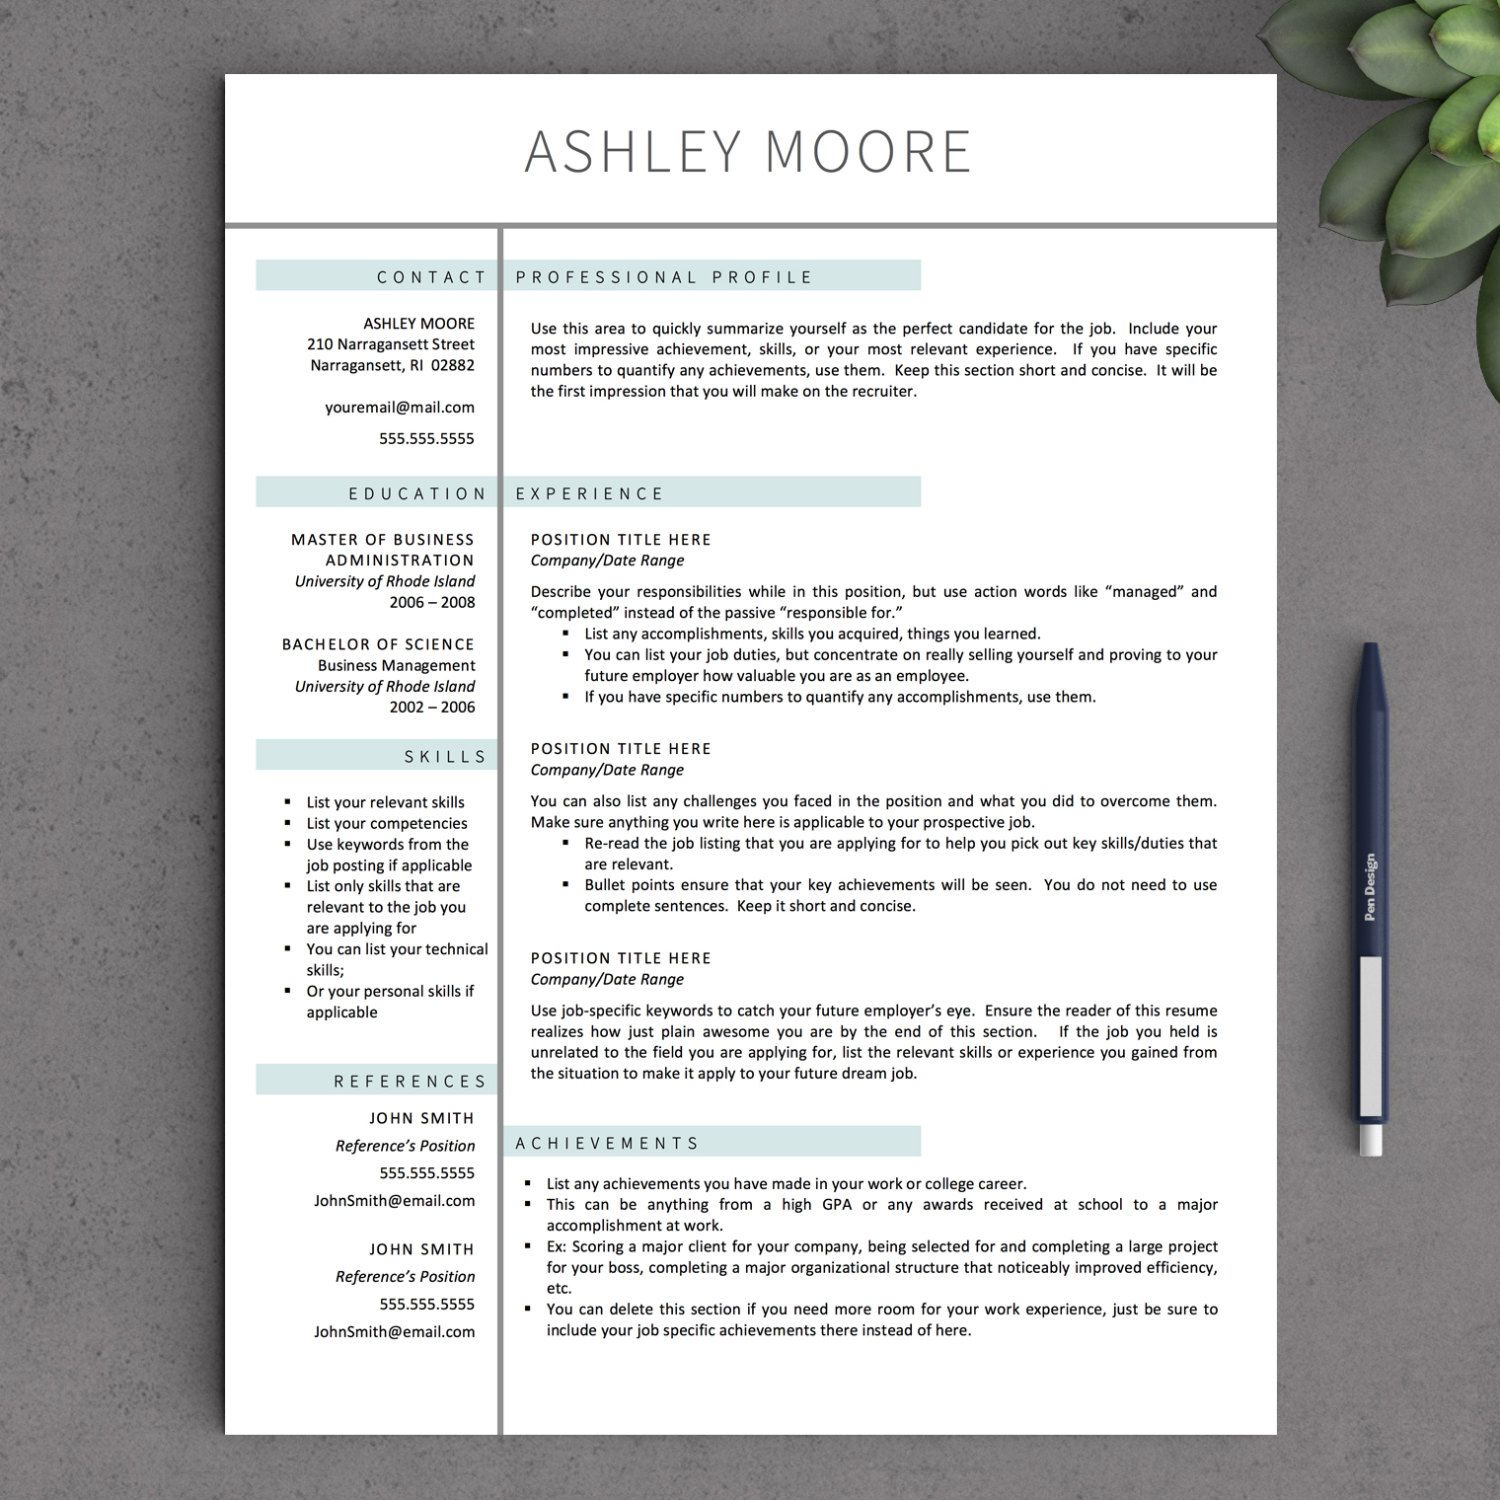 apple pages resume template download apple pages resume template download apple - Downloadable Resume Templates Free